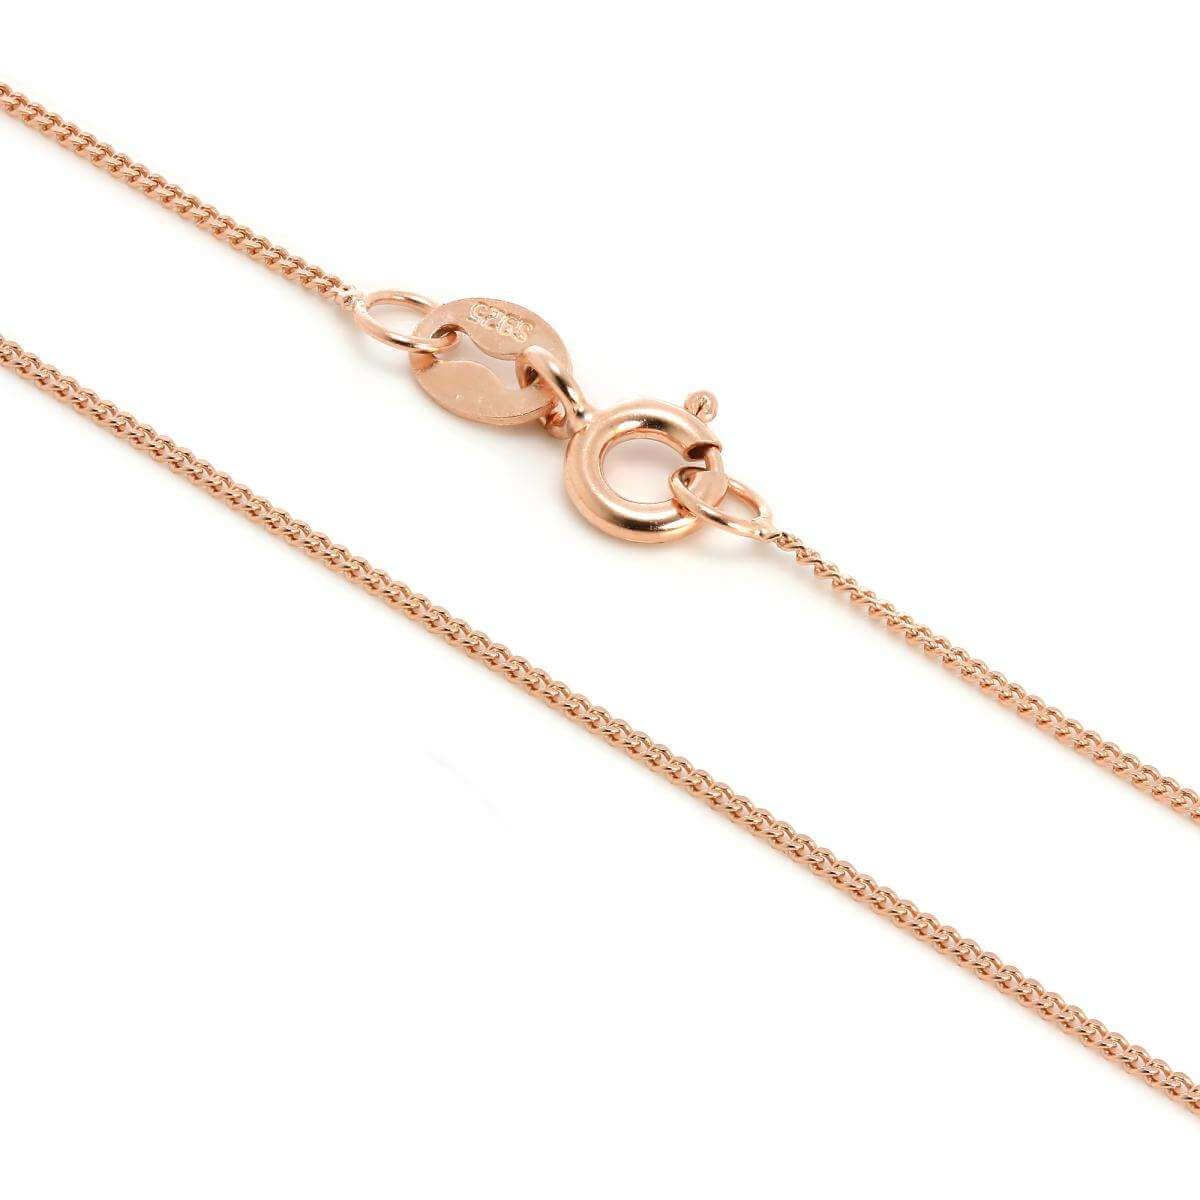 Rose Gold Plated Sterling Silver Fine Diamond Cut Chain 14 - 32 Inches